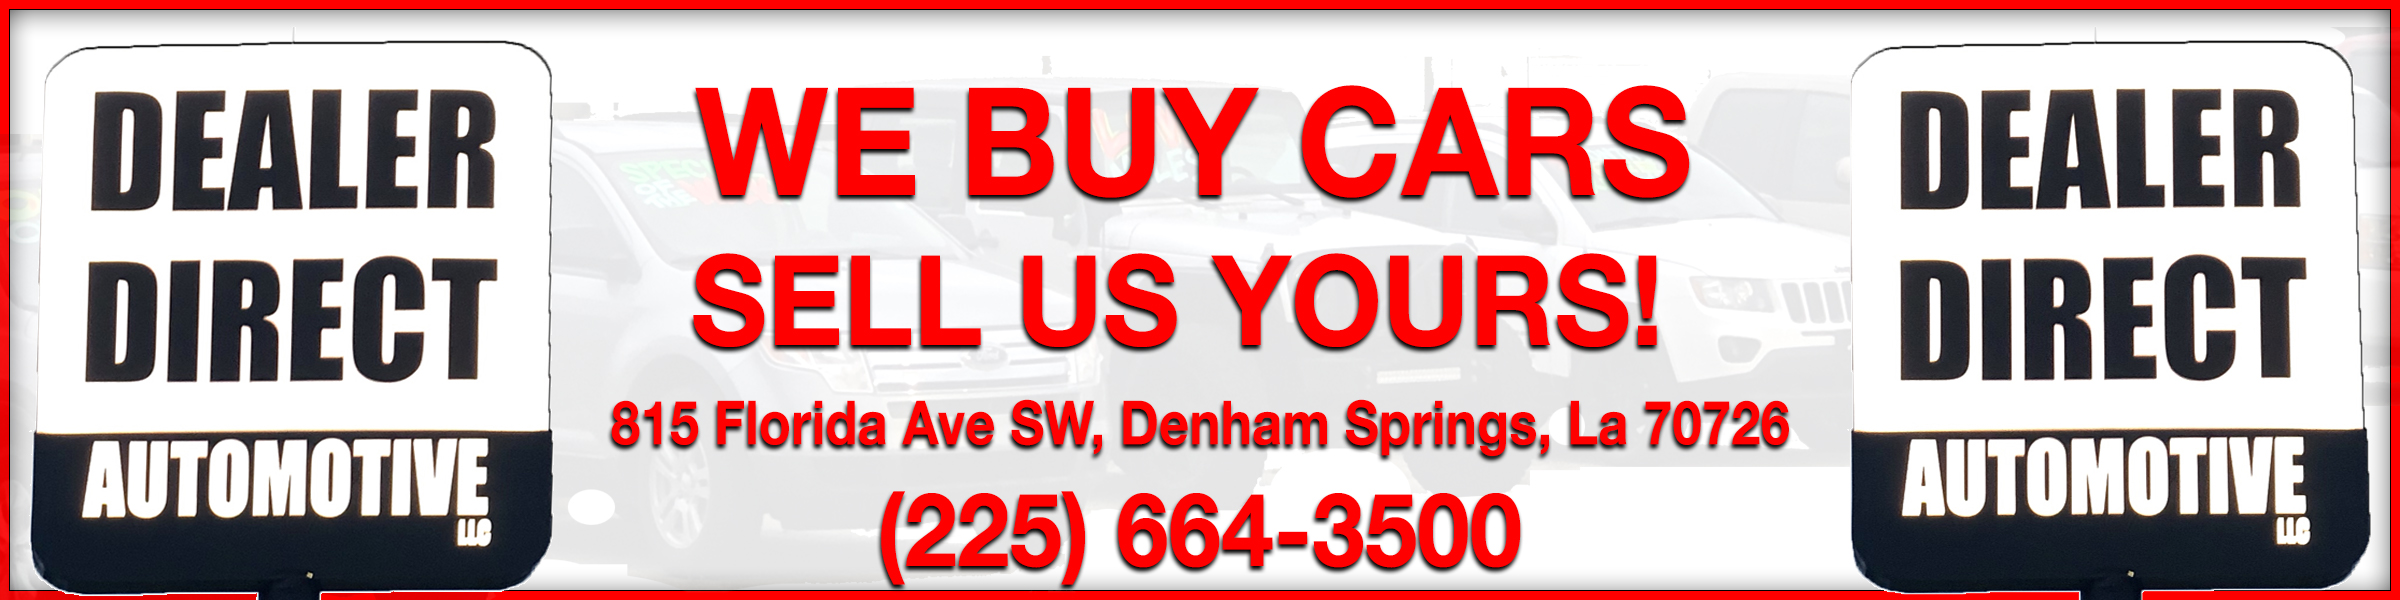 Sell Us Your Car | We Buy Cars